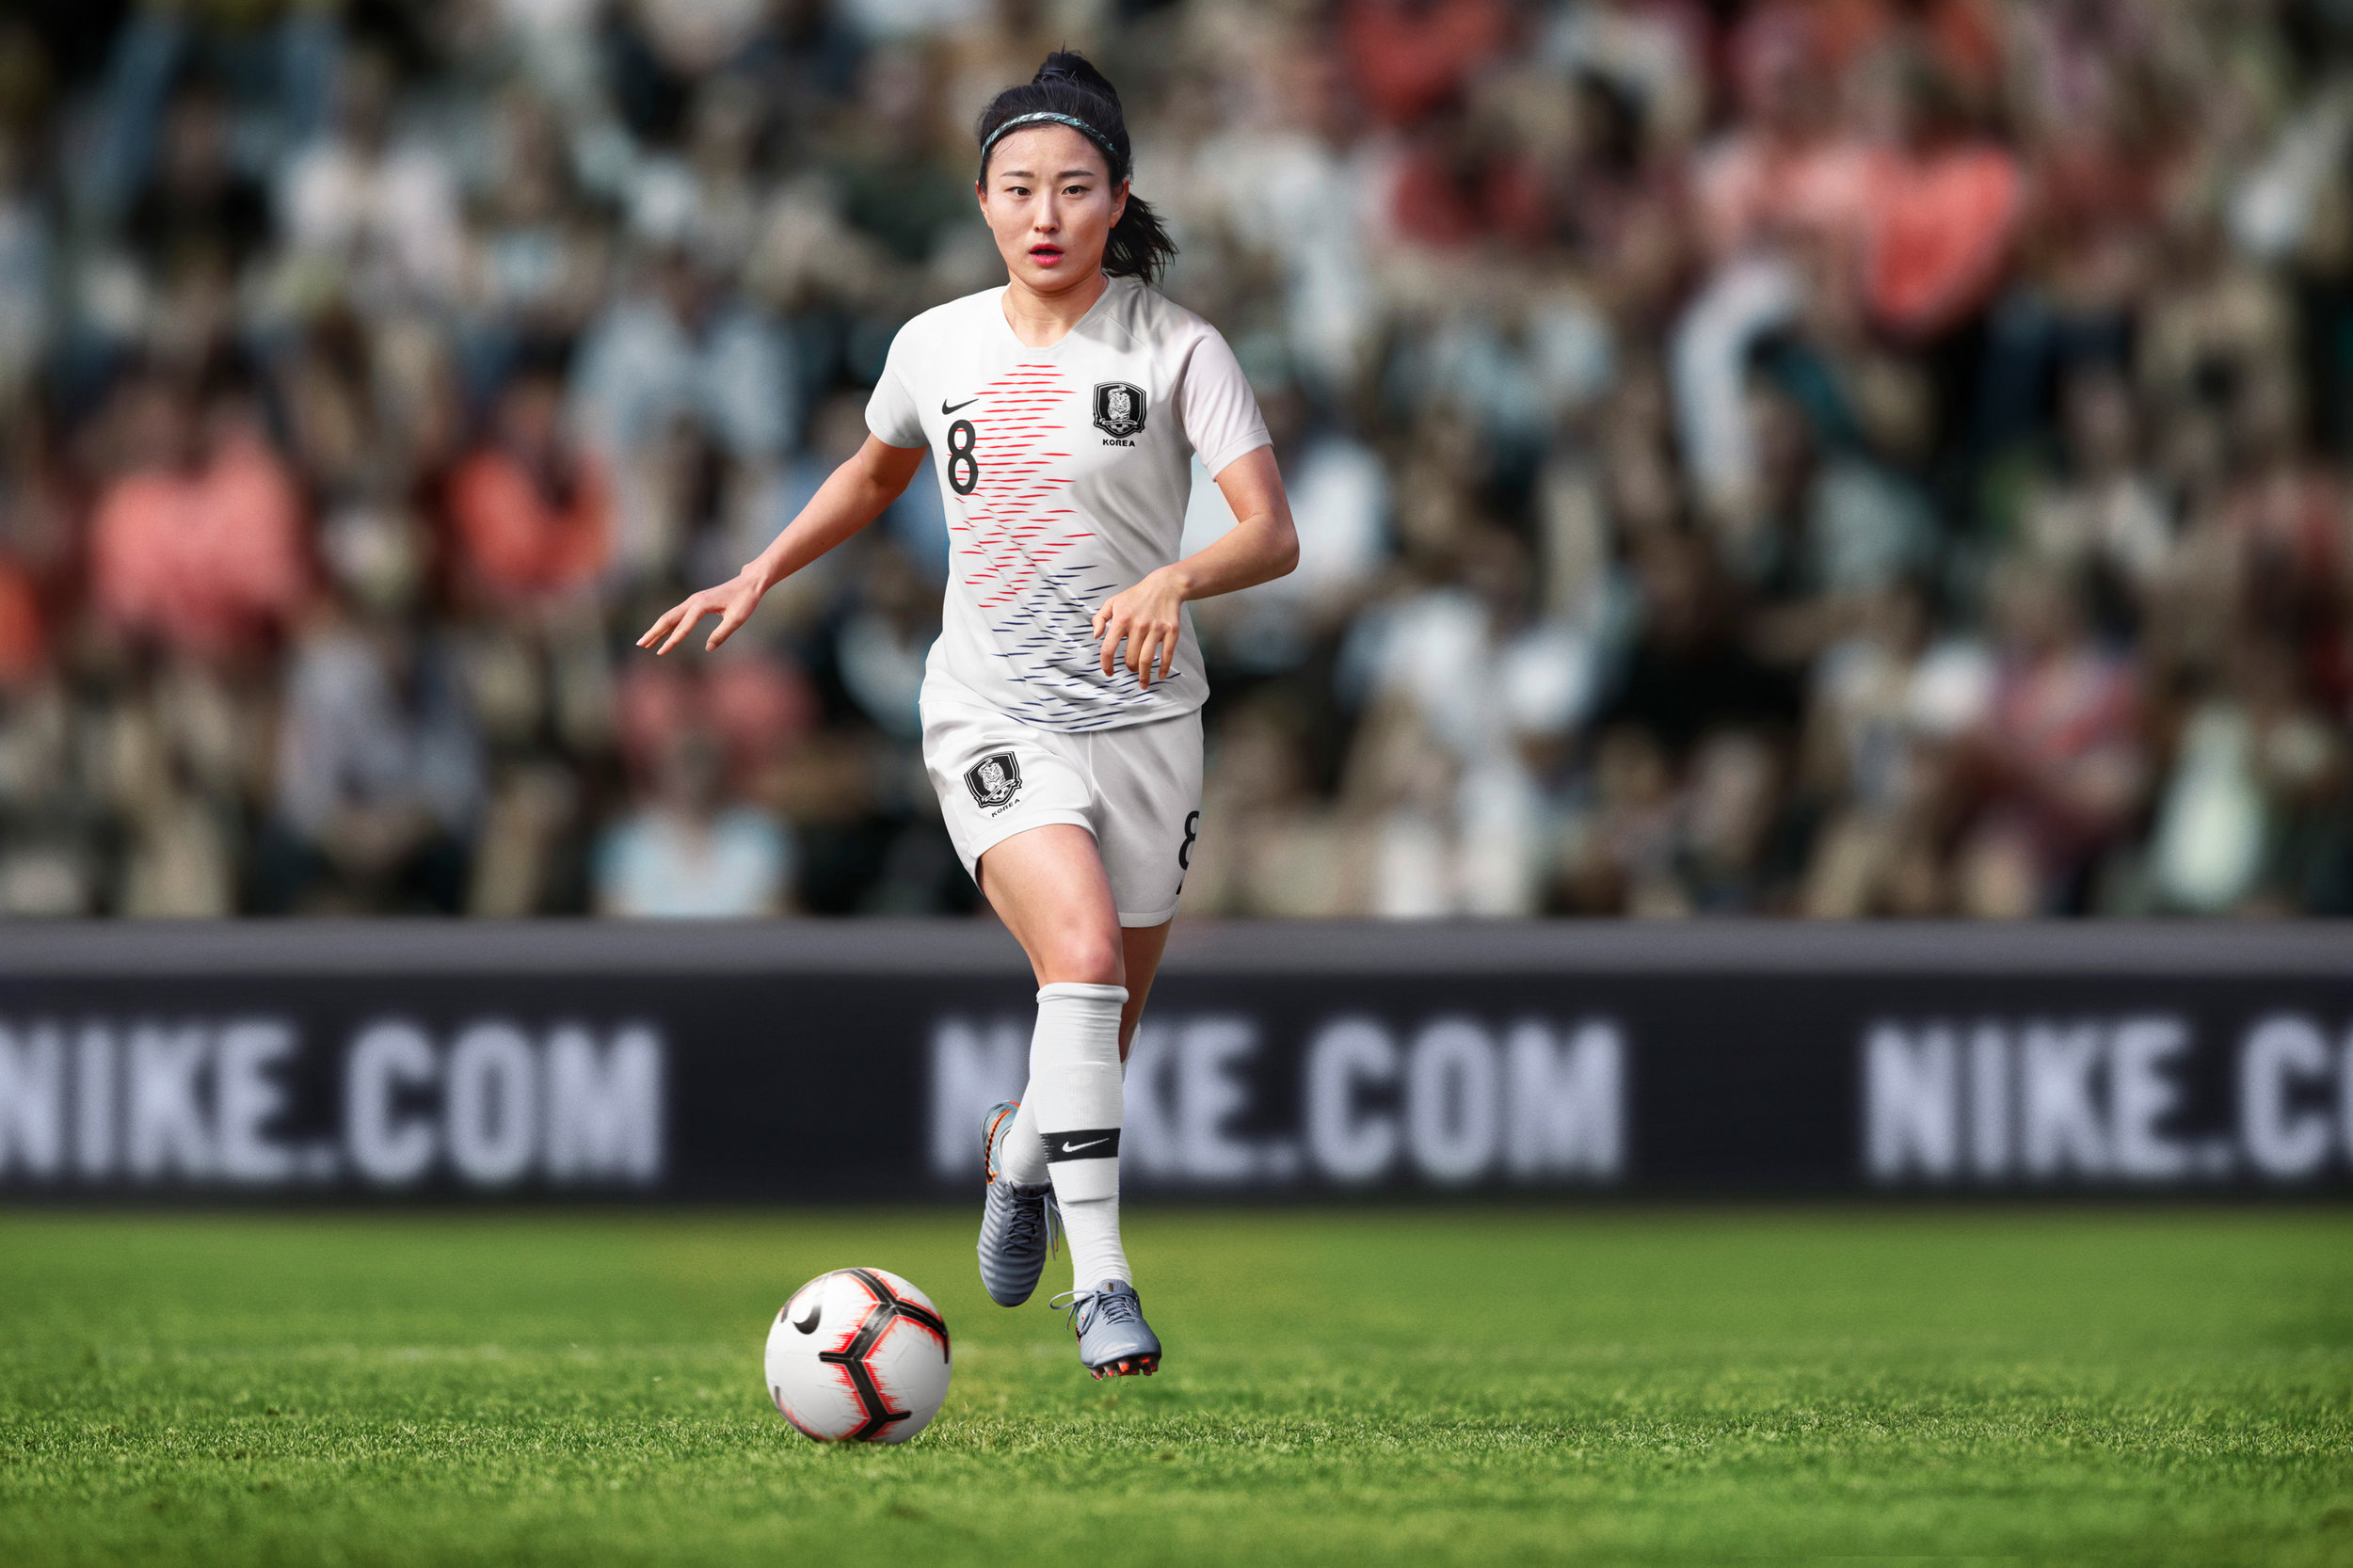 Nike_National_Team_Kit_Südkorea_8.jpg